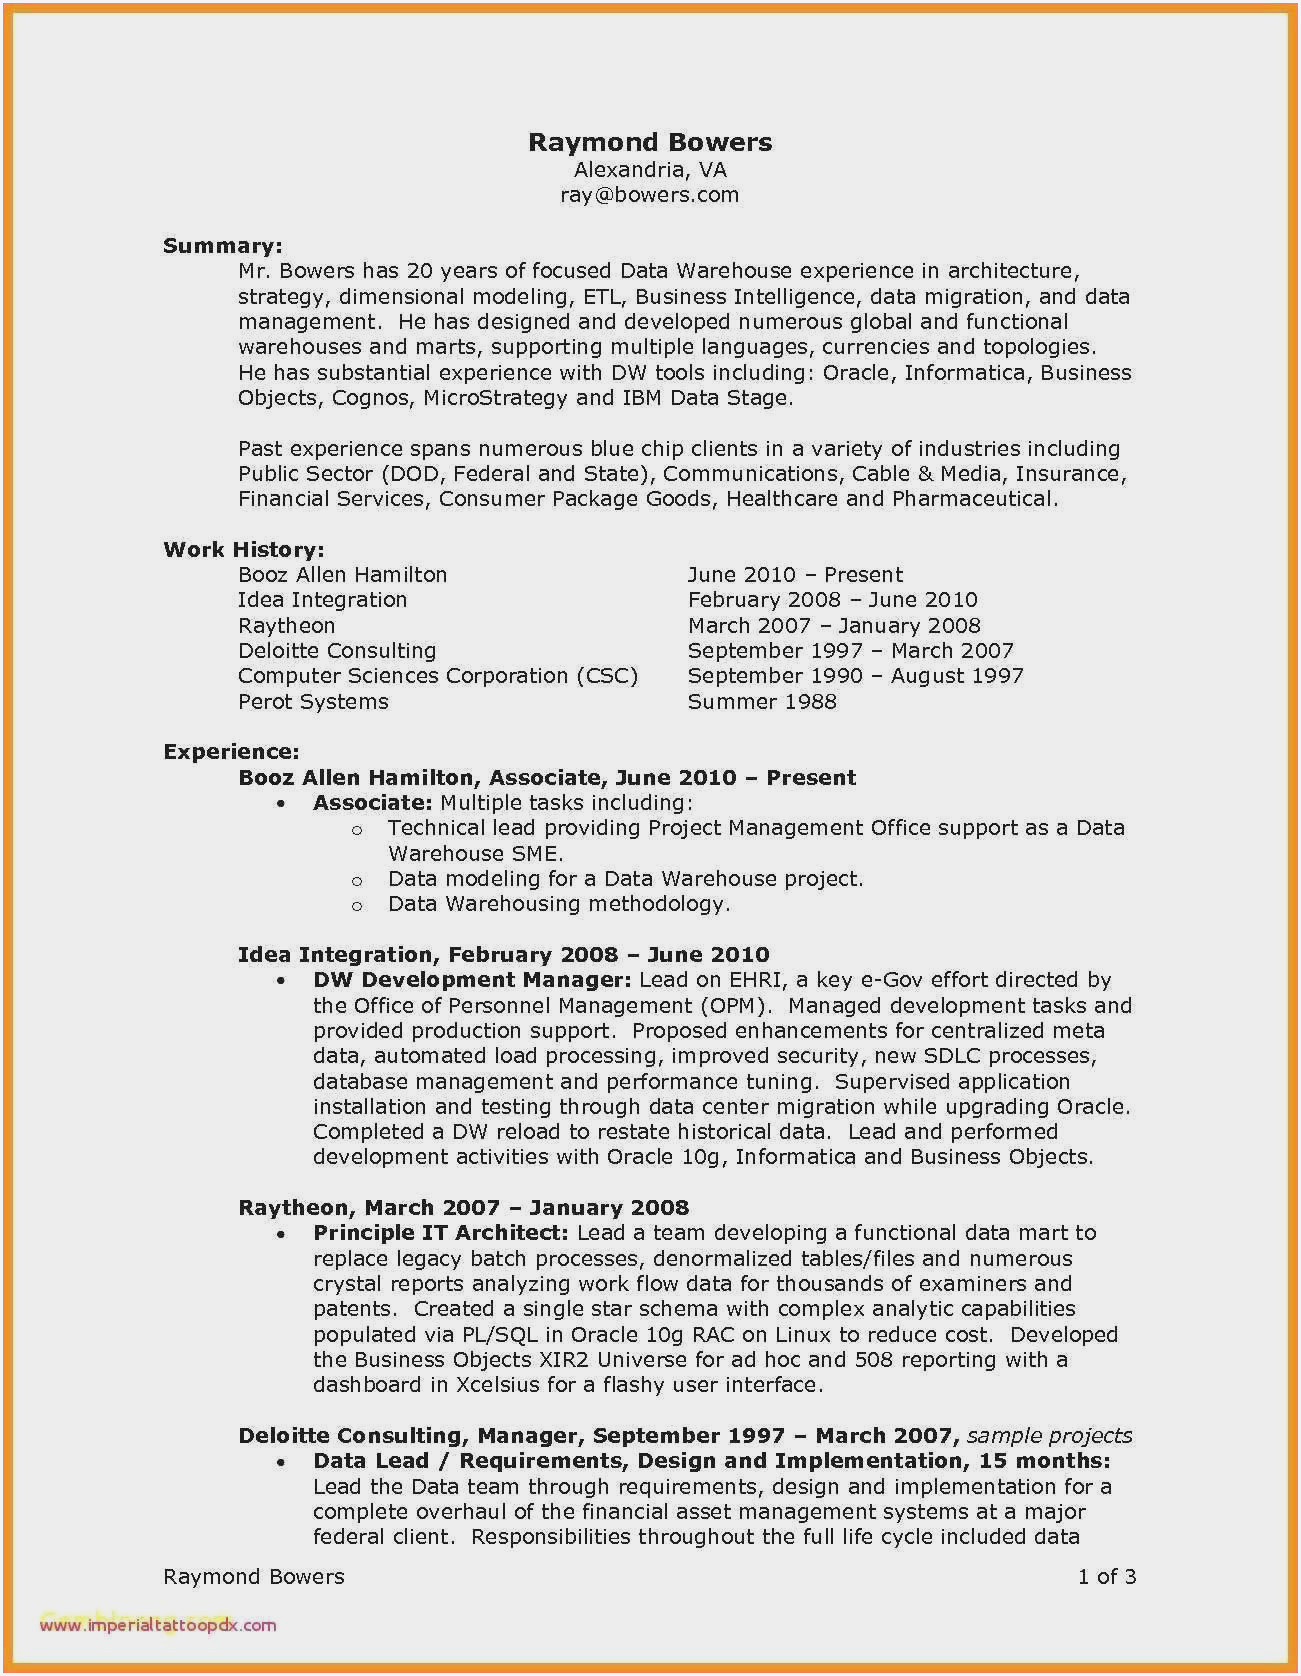 Data Warehouse Project Manager Resume Sample Data Warehouse Project Manager Resume Sample - Resume : Resume ...